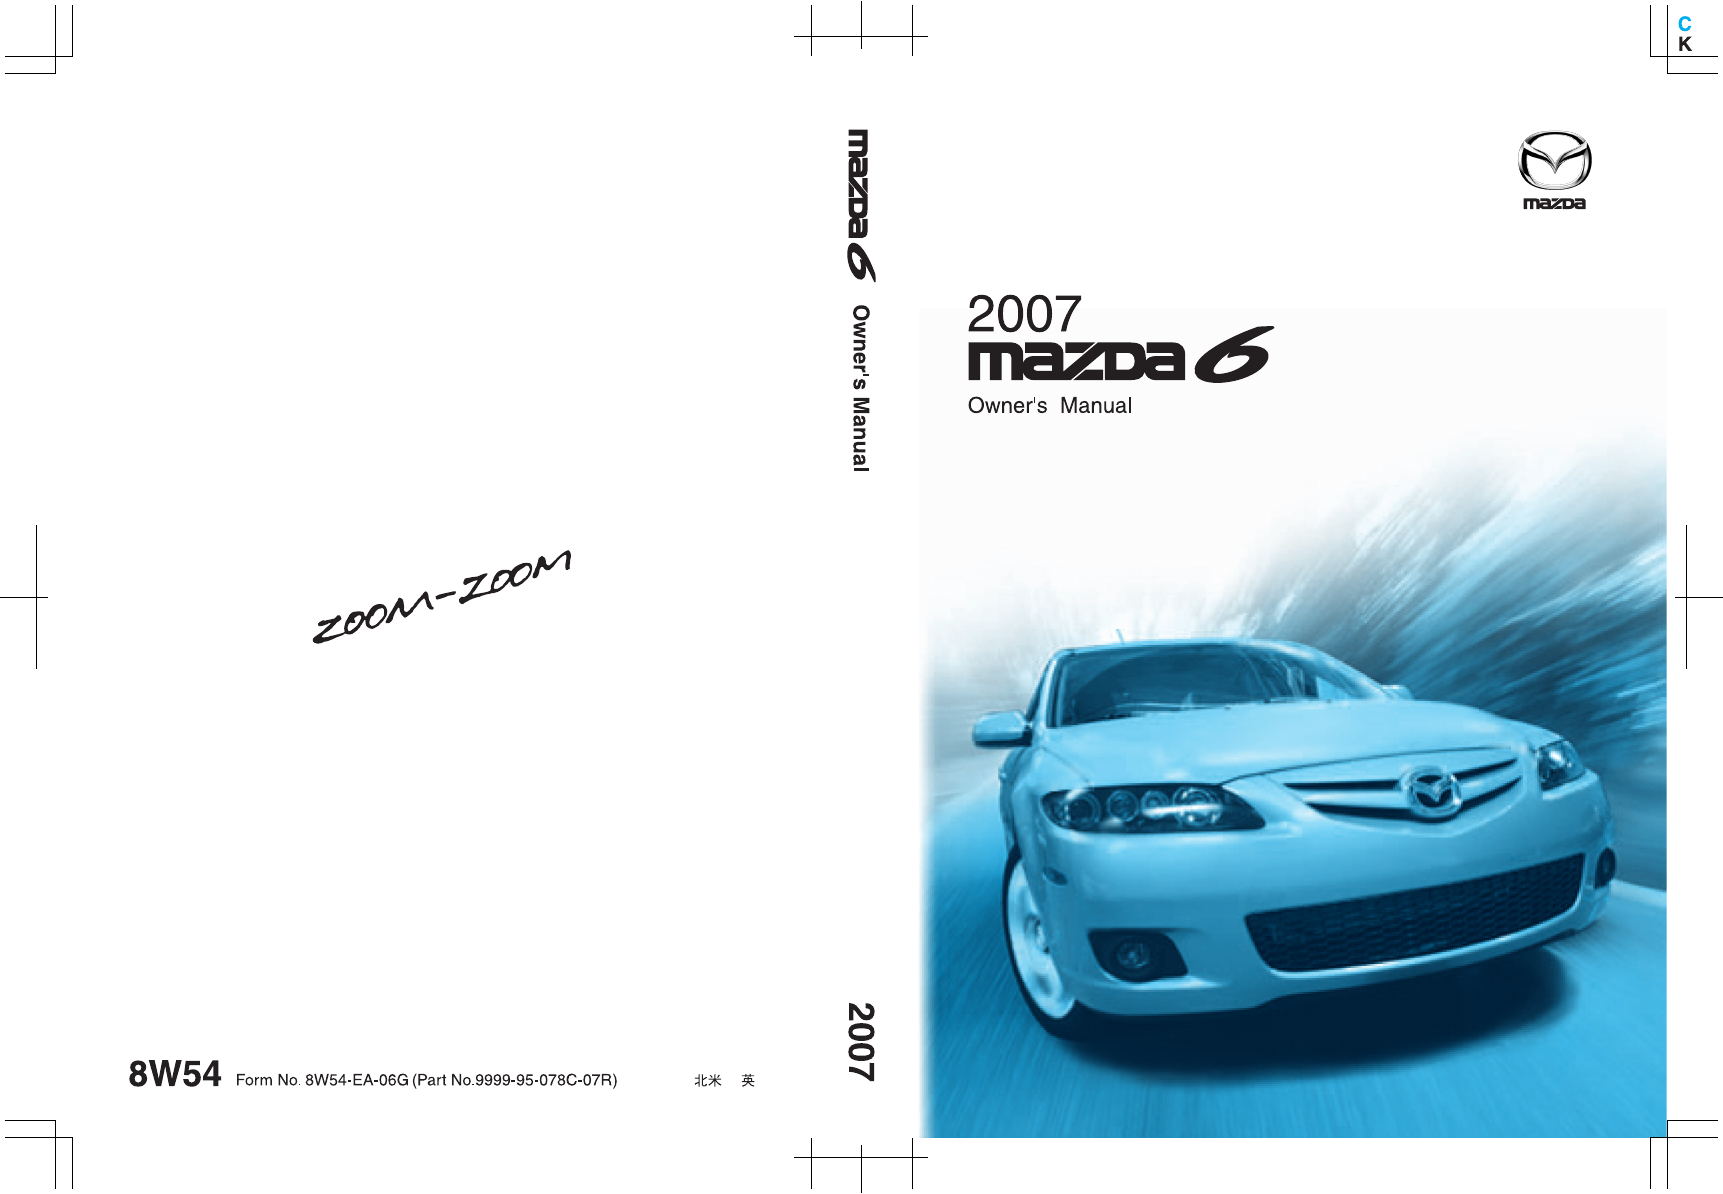 2007 mazda 6 owners manual pdf rh manuals co mazda 6 2009 user manual pdf mazda 6 2009 user manual pdf